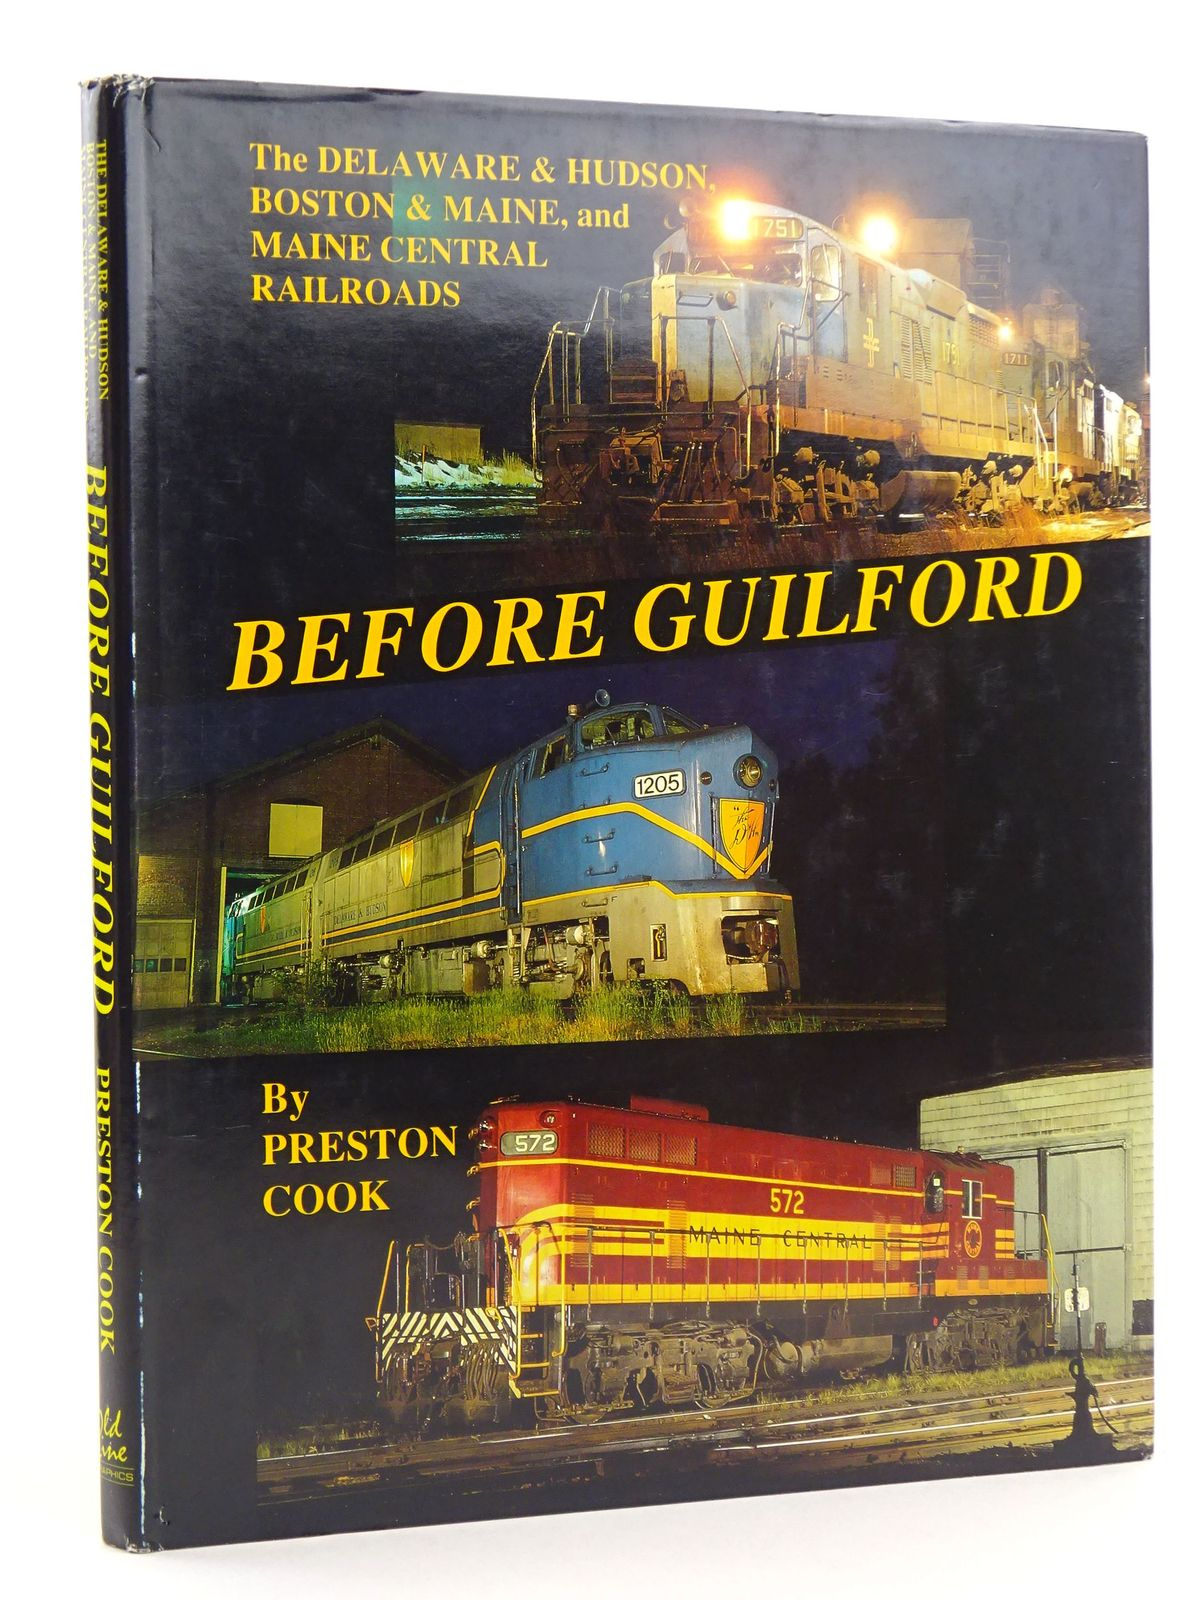 Photo of THE DELAWARE & HUDSON, BOSTON & MAINE, AND MAINE CENTRAIL RAILROADS BEFORE GUILFORD written by Cook, Preston published by Old Line Graphics (STOCK CODE: 1818124)  for sale by Stella & Rose's Books